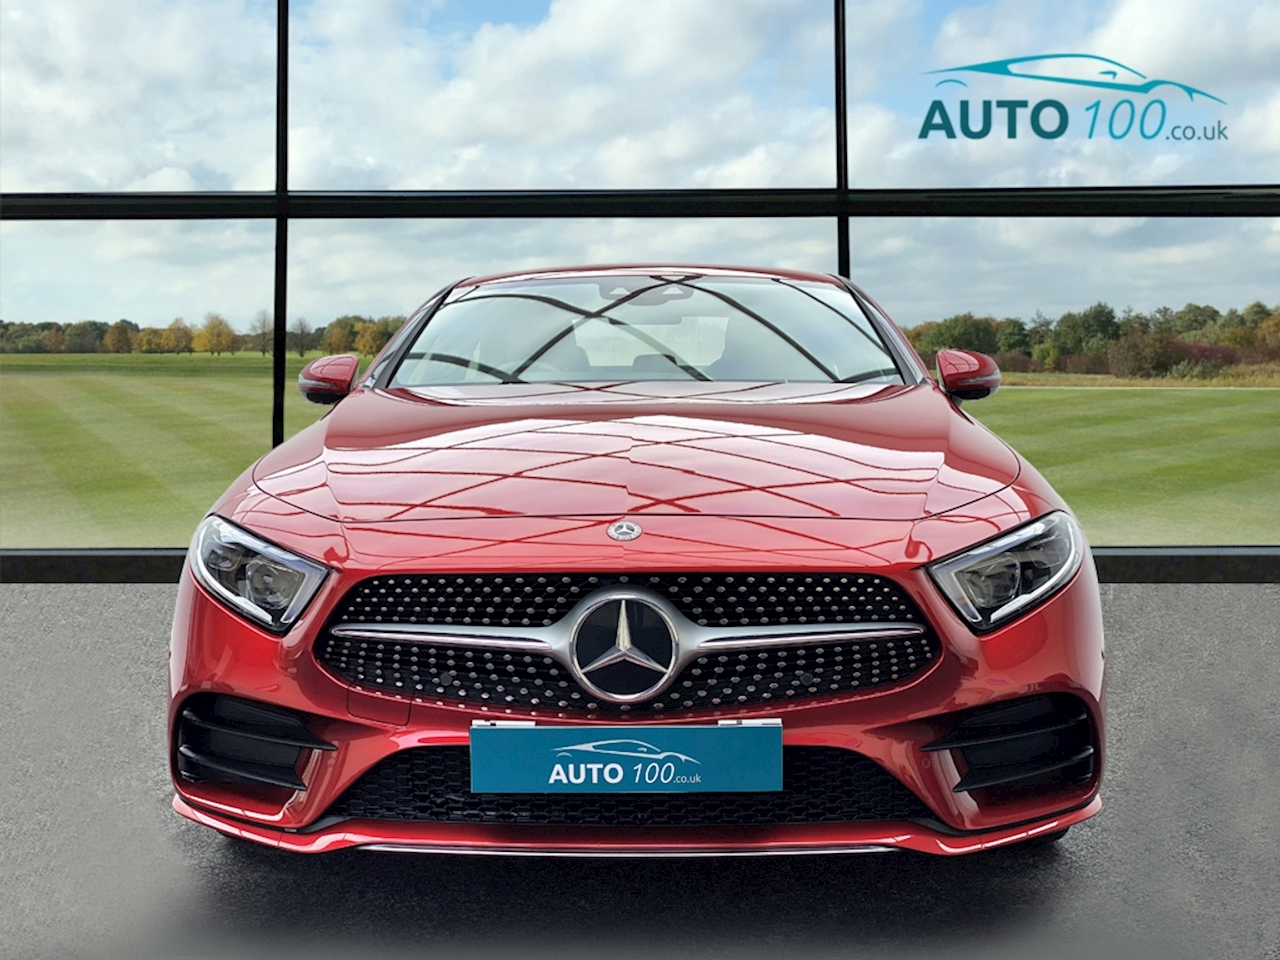 Mercedes-Benz Cls Cls 350 D 4Matic Amg Line Coupe 2.9 Automatic Diesel